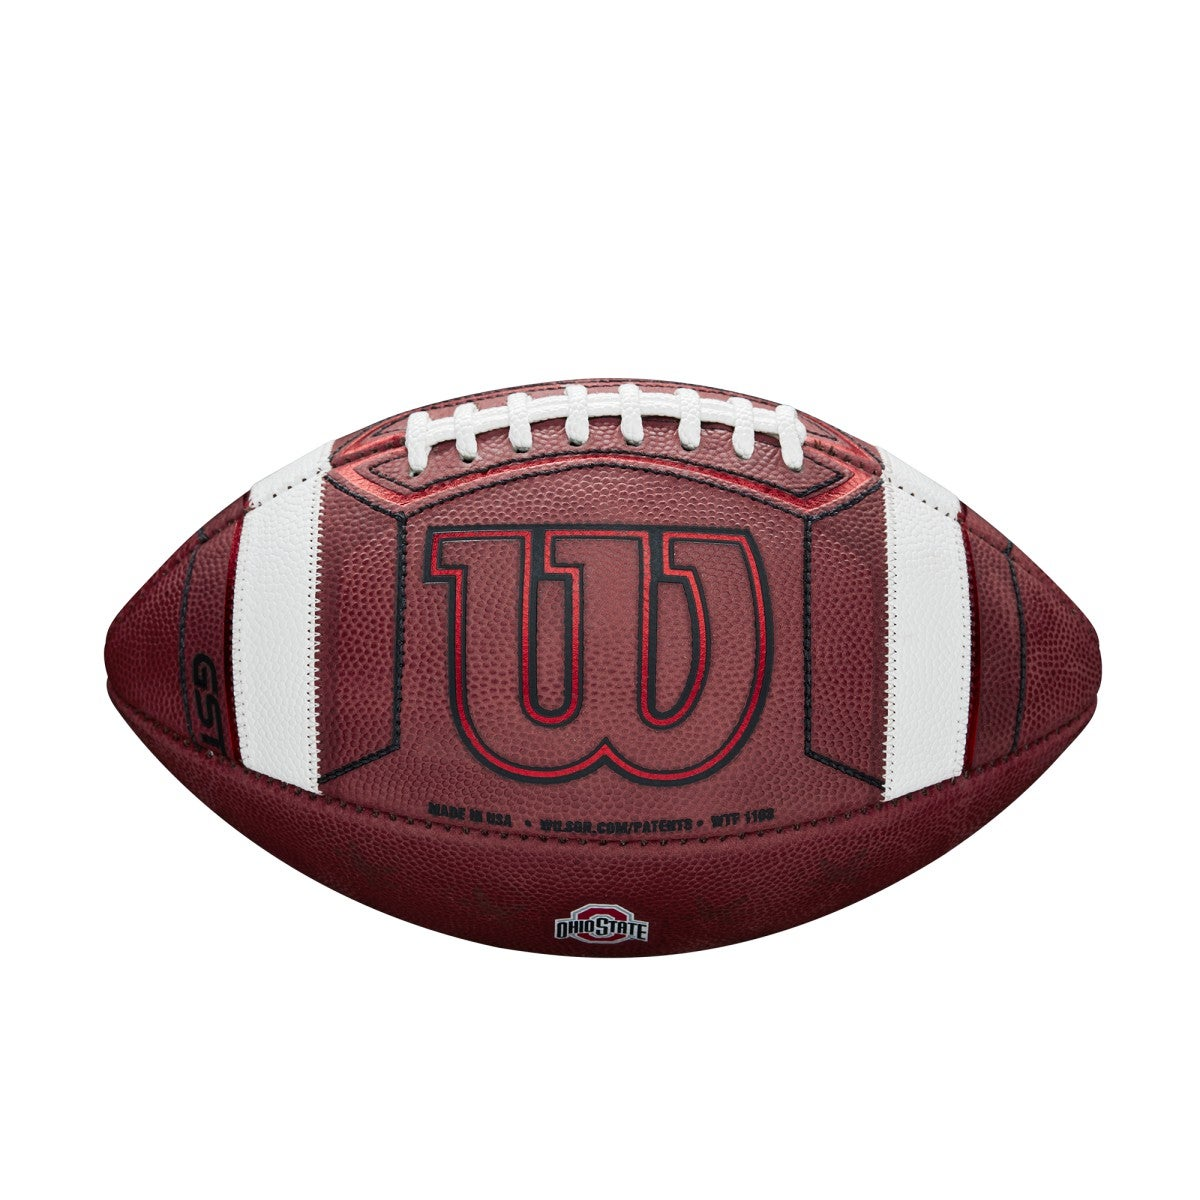 Prime Football Ohio State Wilson Sporting Goods